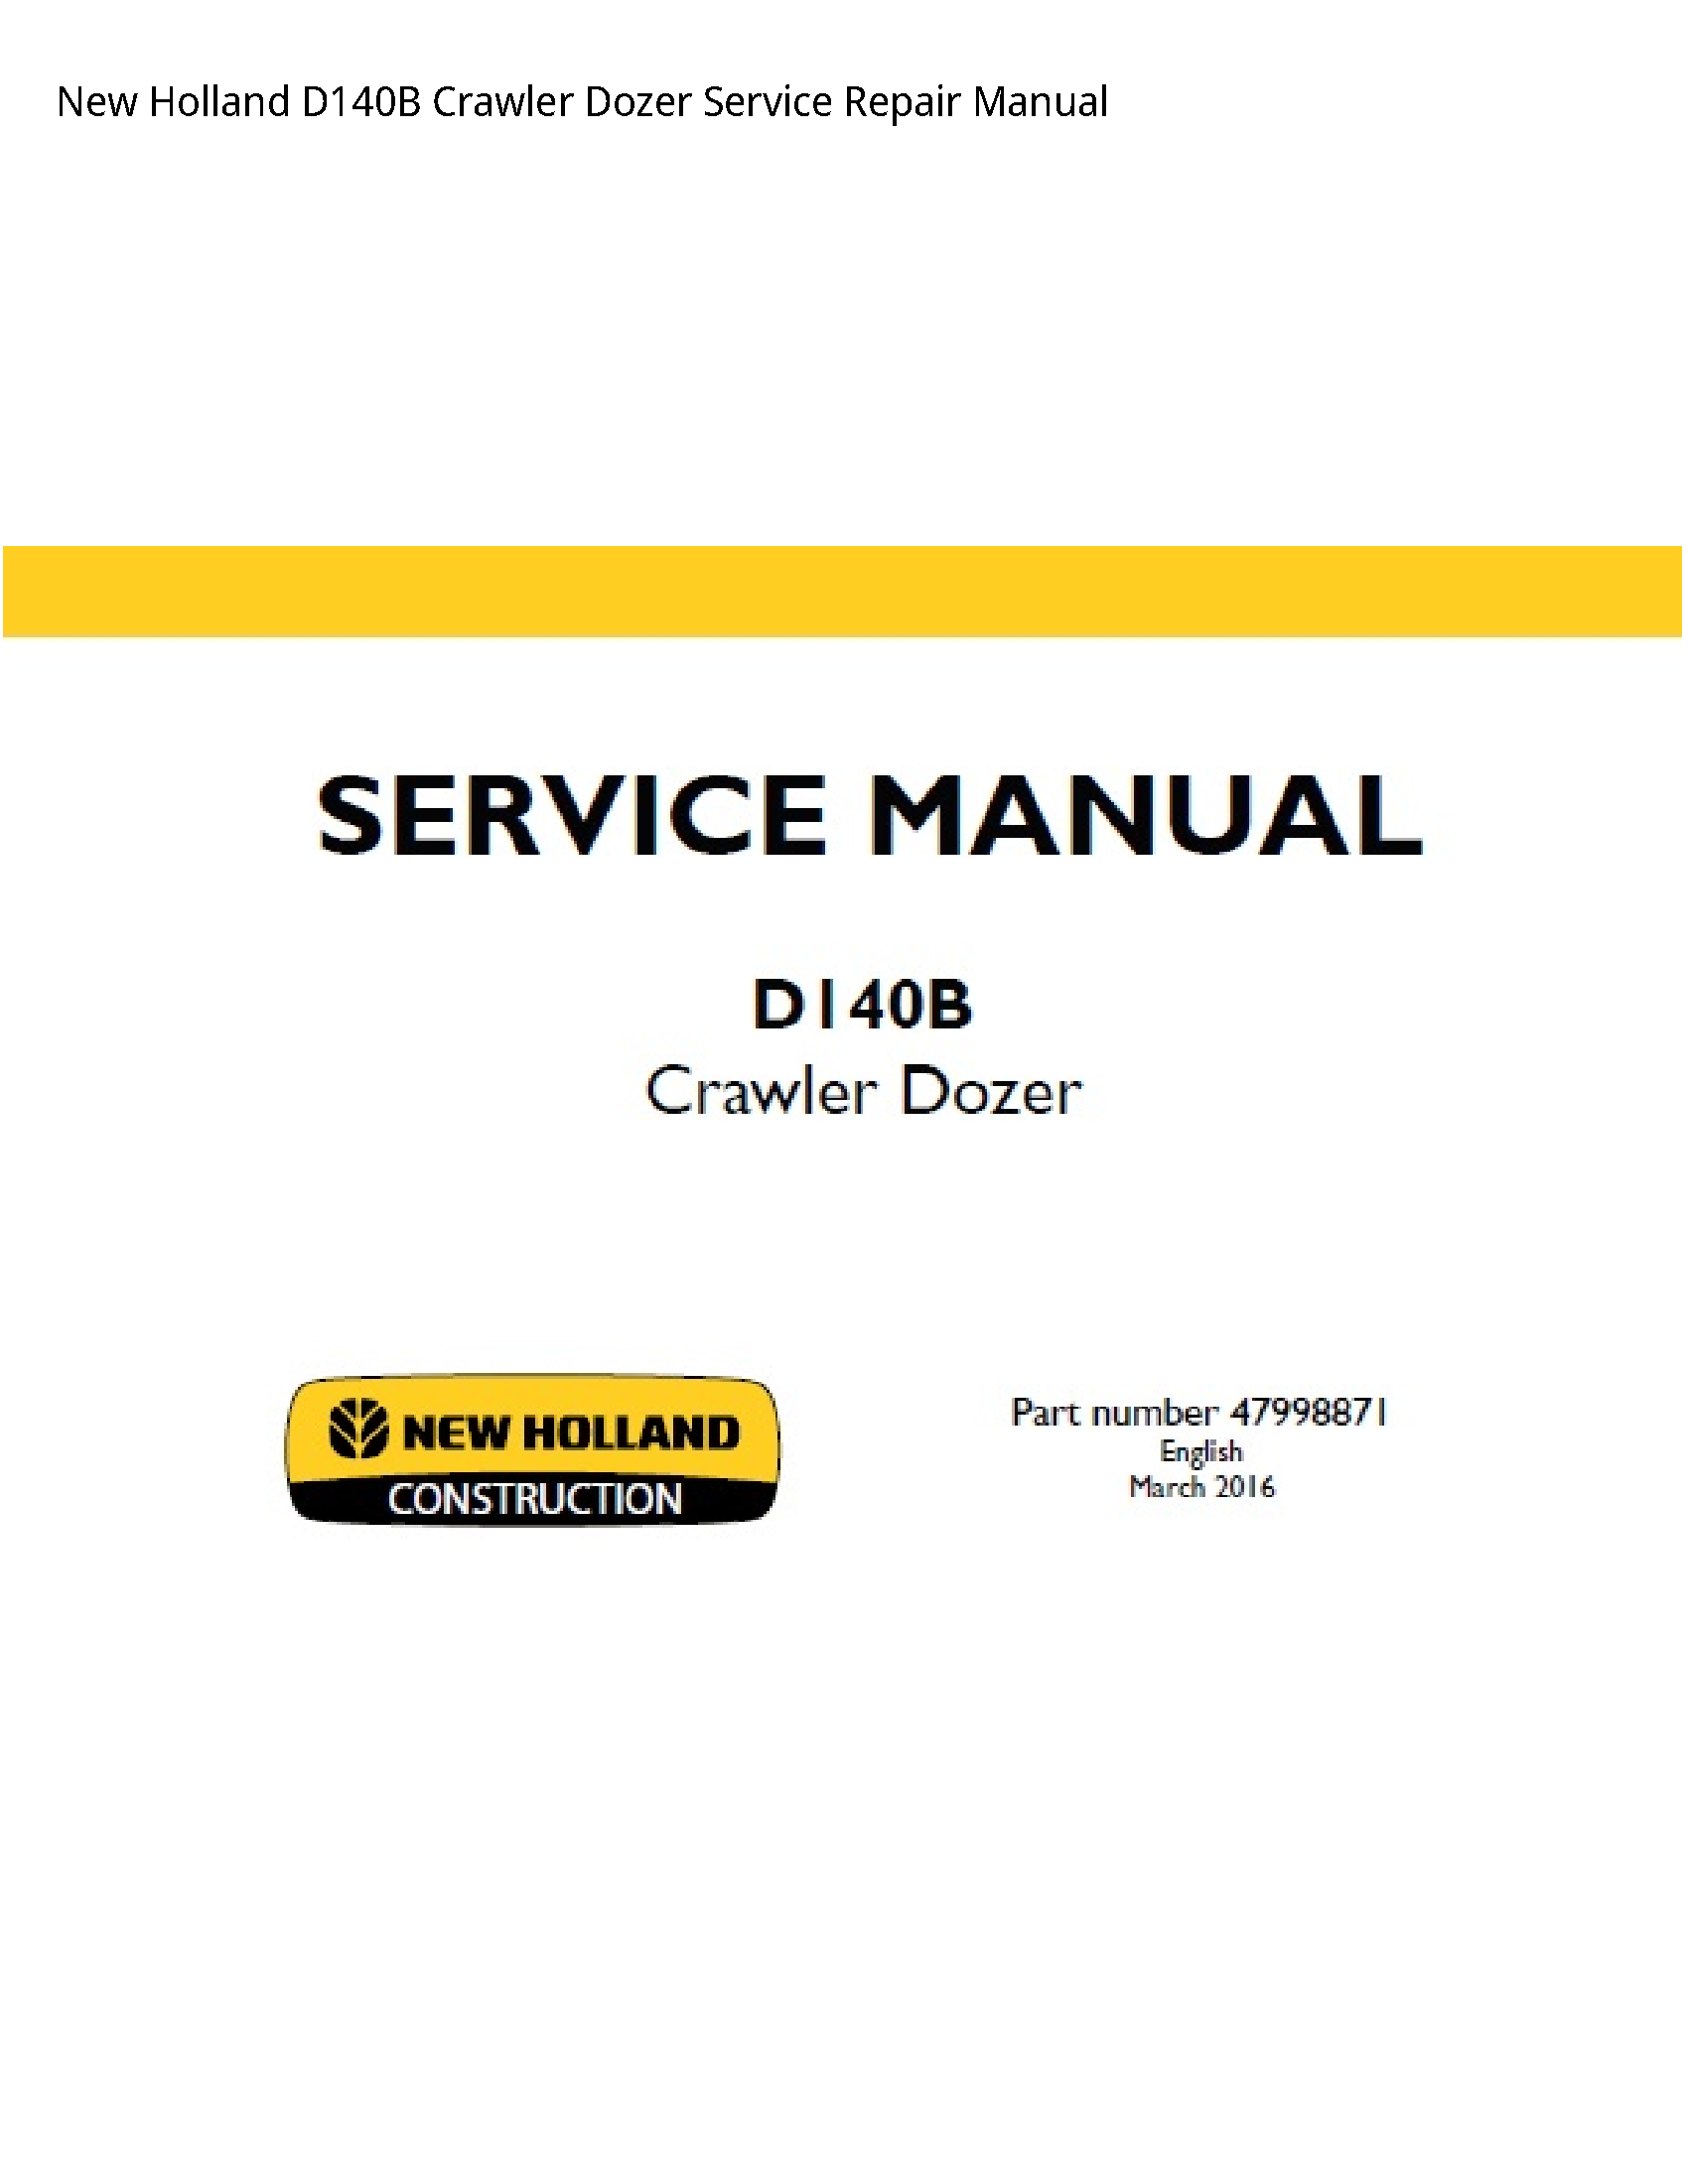 New Holland D140B Crawler Dozer manual